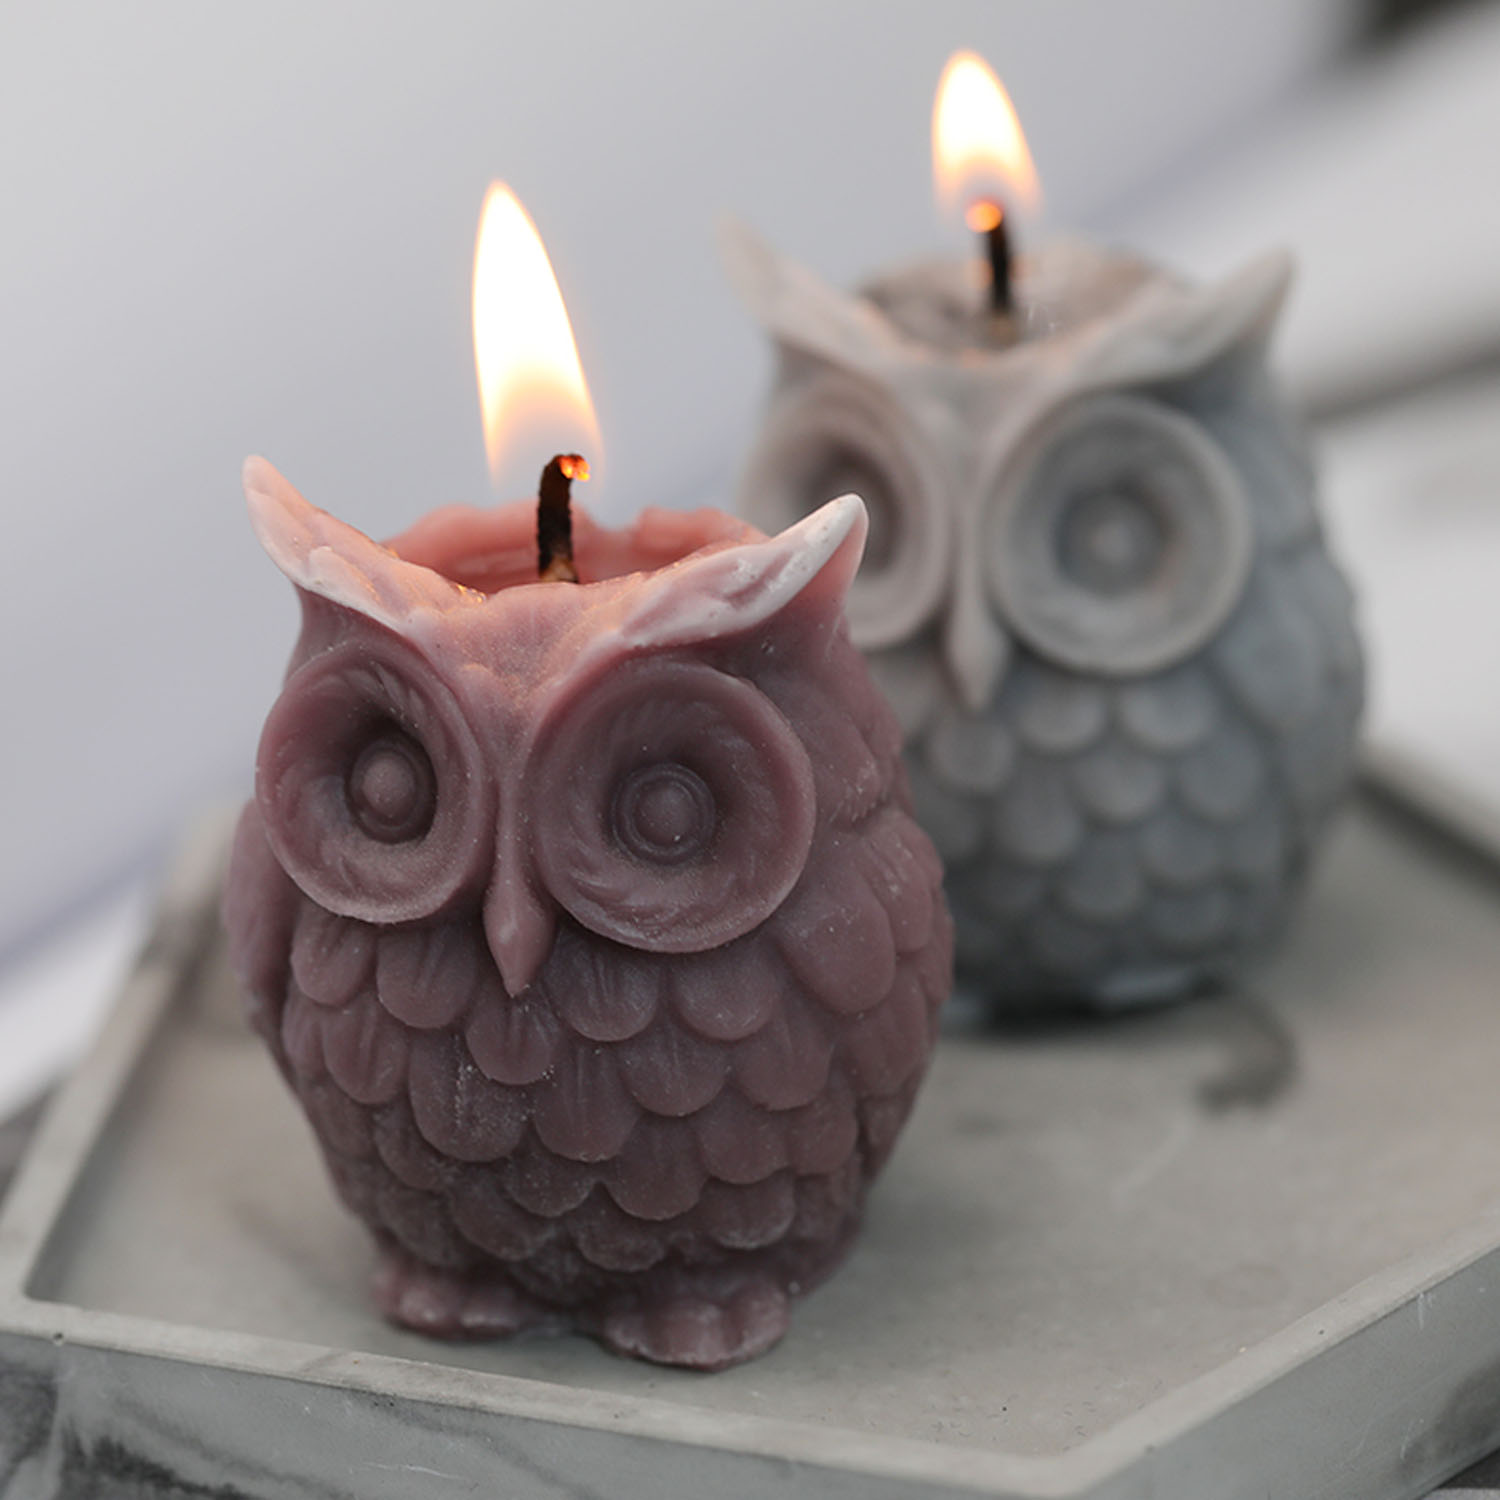 3D Owl Candle Making Mold Silicone DIY Handmade Resin Soap Pastry Cake Clay Baking Moulds For Plaster Wax Mould Decorating Tools